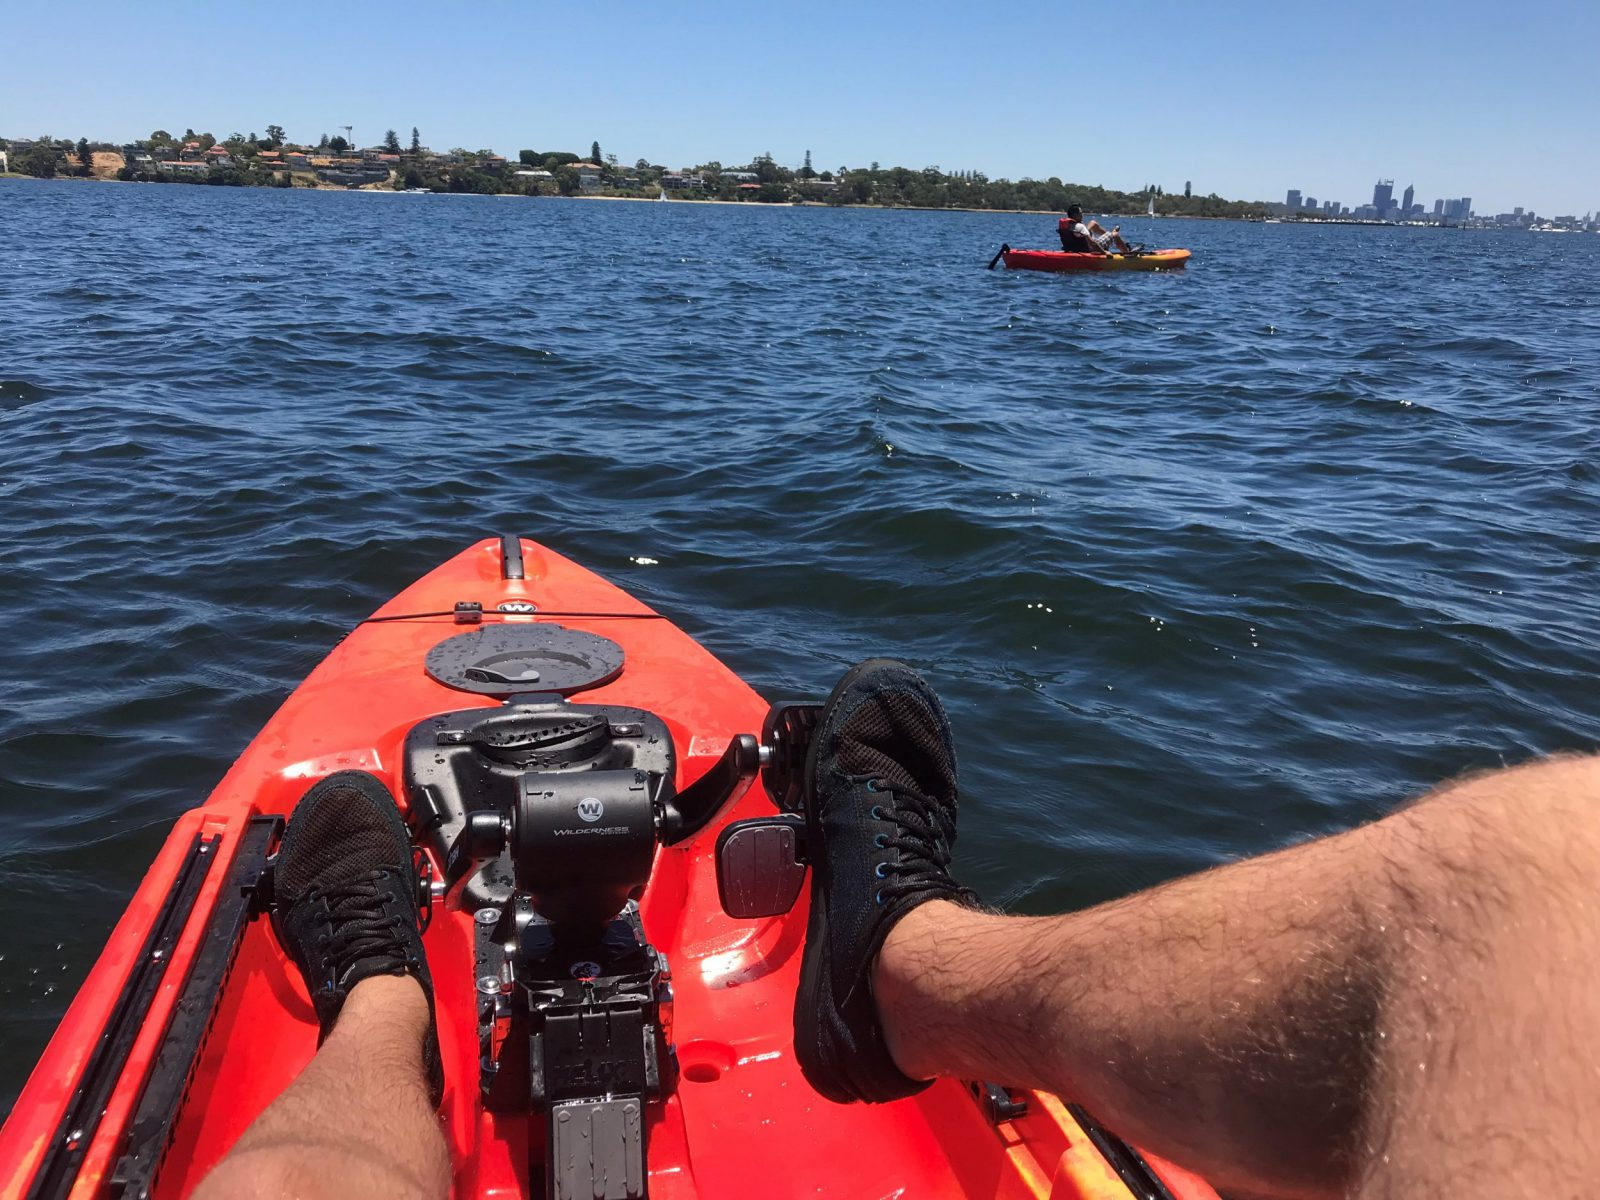 Home - Melbourne Paddle Sports, Kayaks, Canoes, SUP's, Fit